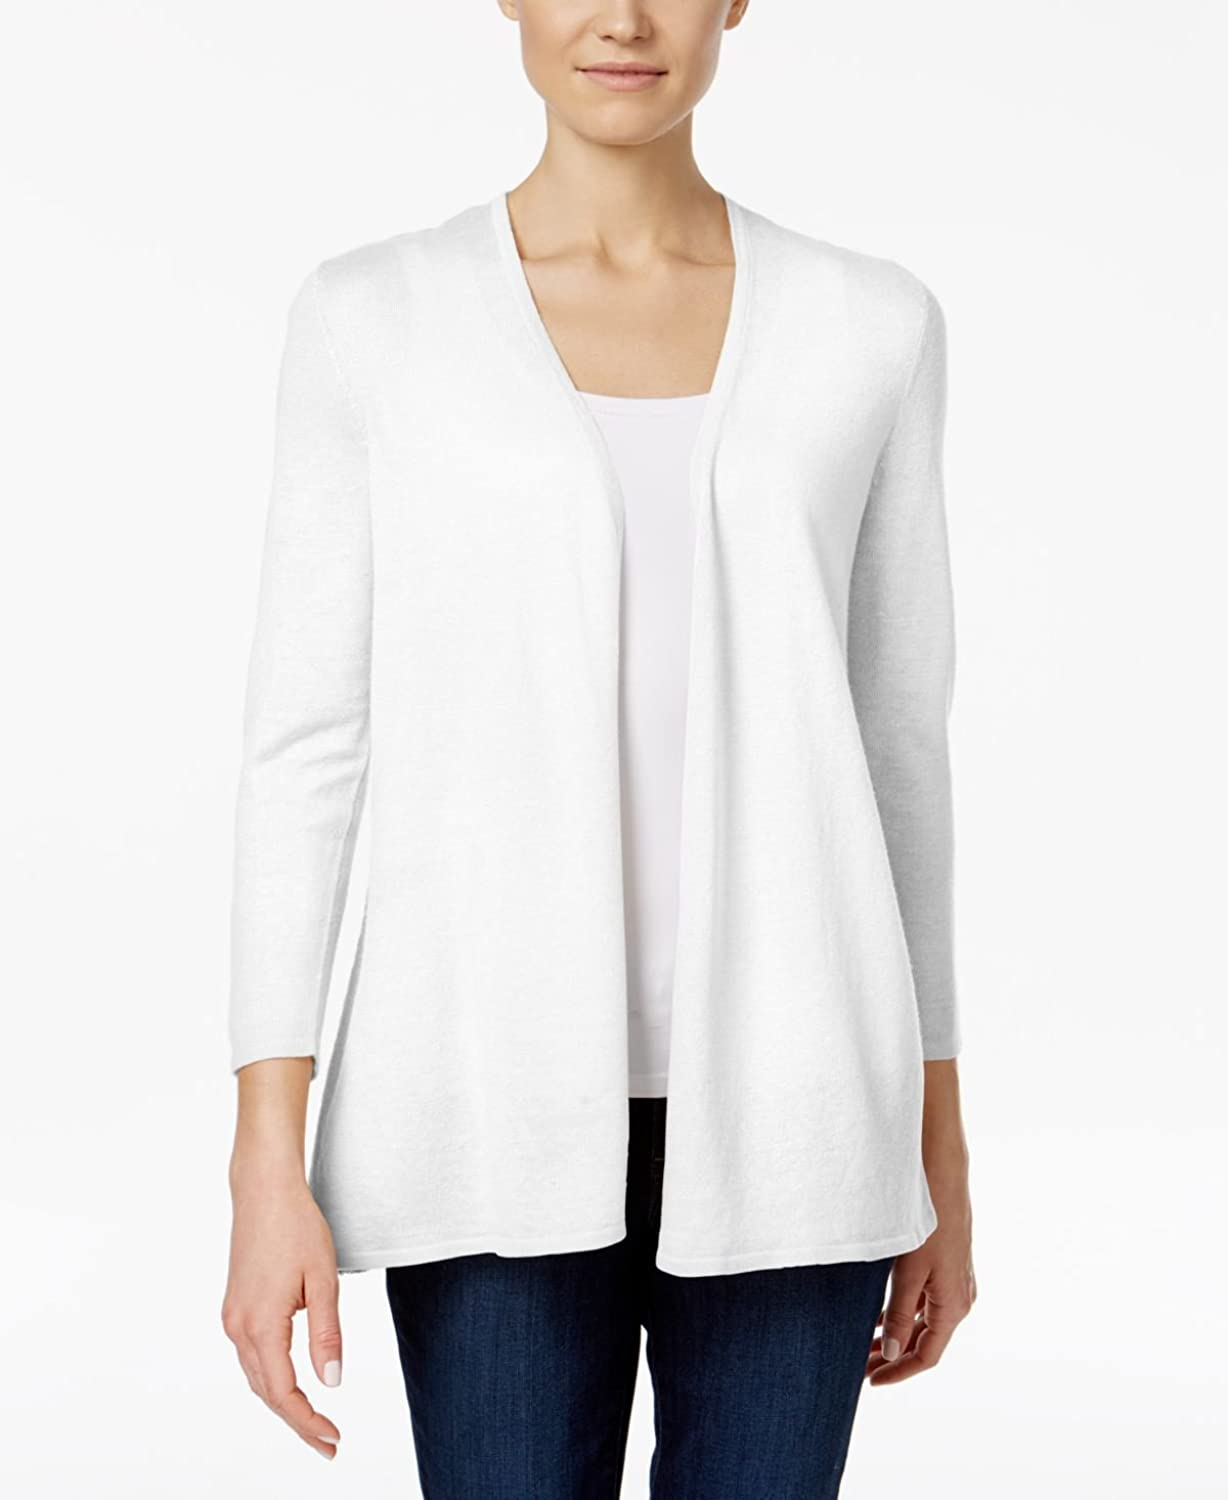 Charter Club Womens Open Front Cardigan Sweater